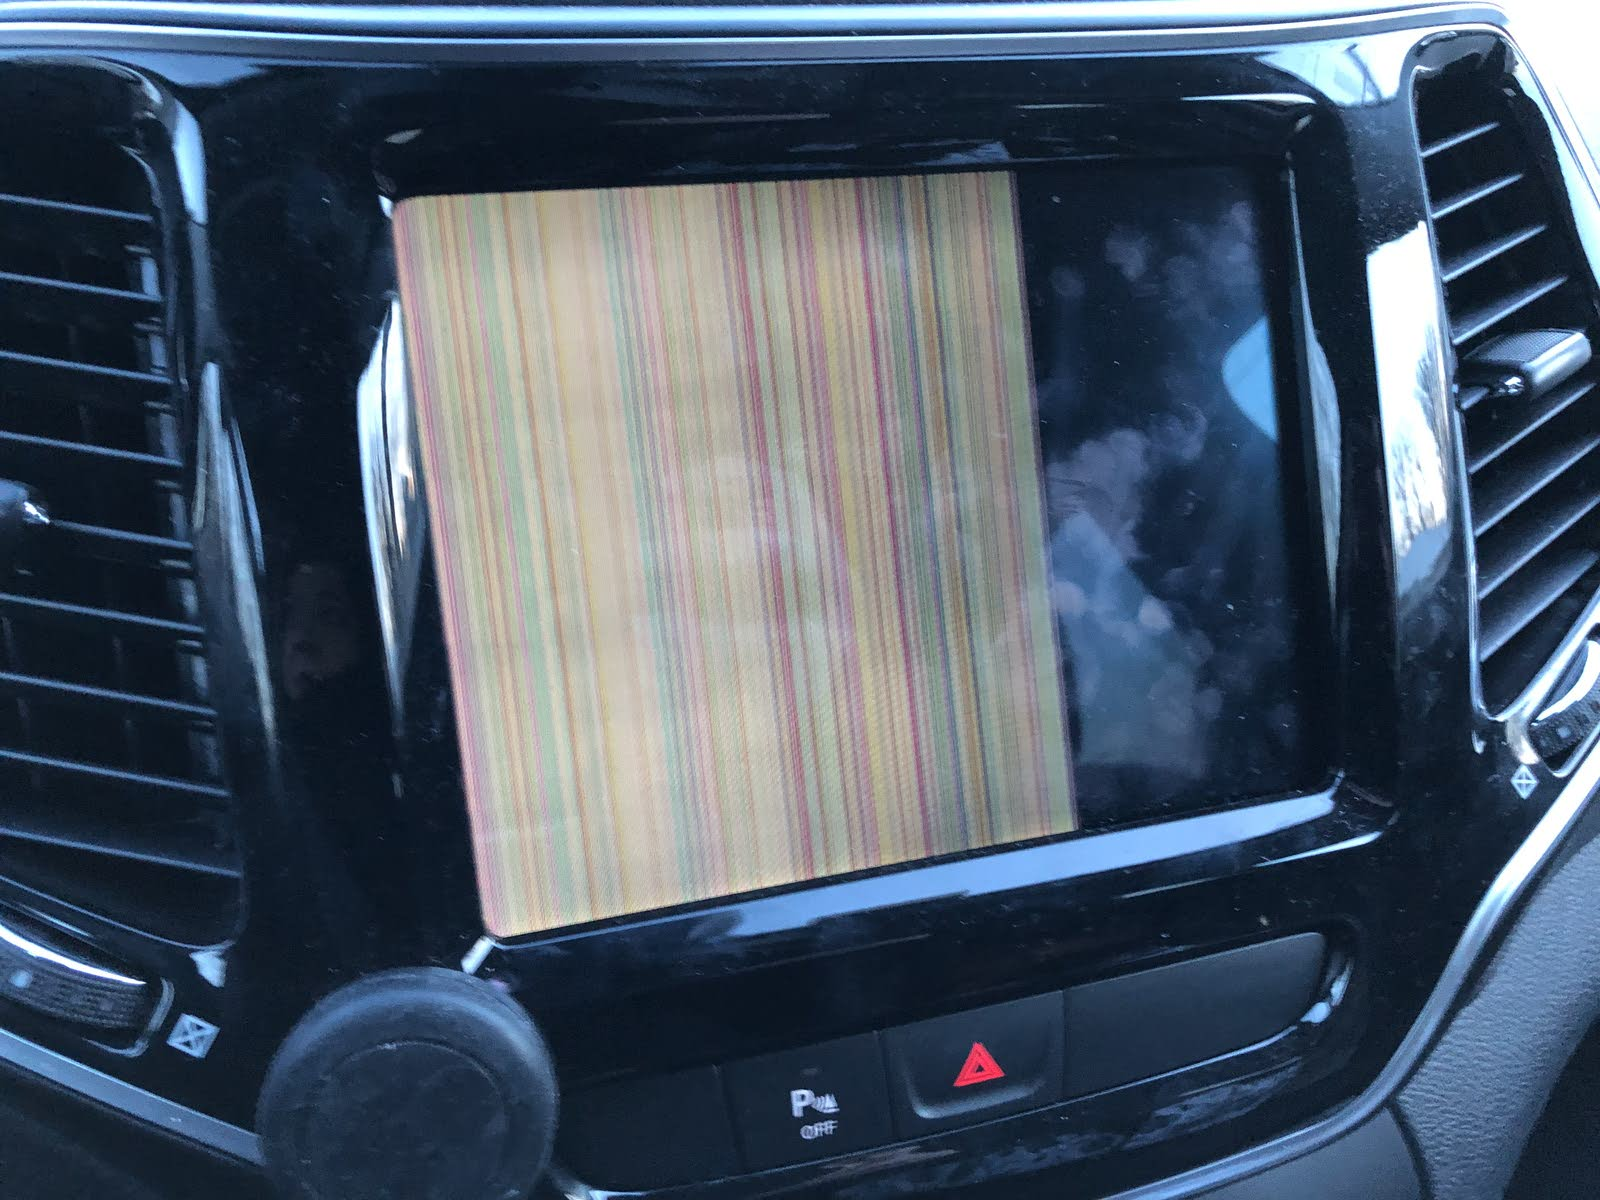 Jeep Cherokee Questions - Media screen issue on 2019 Jeep